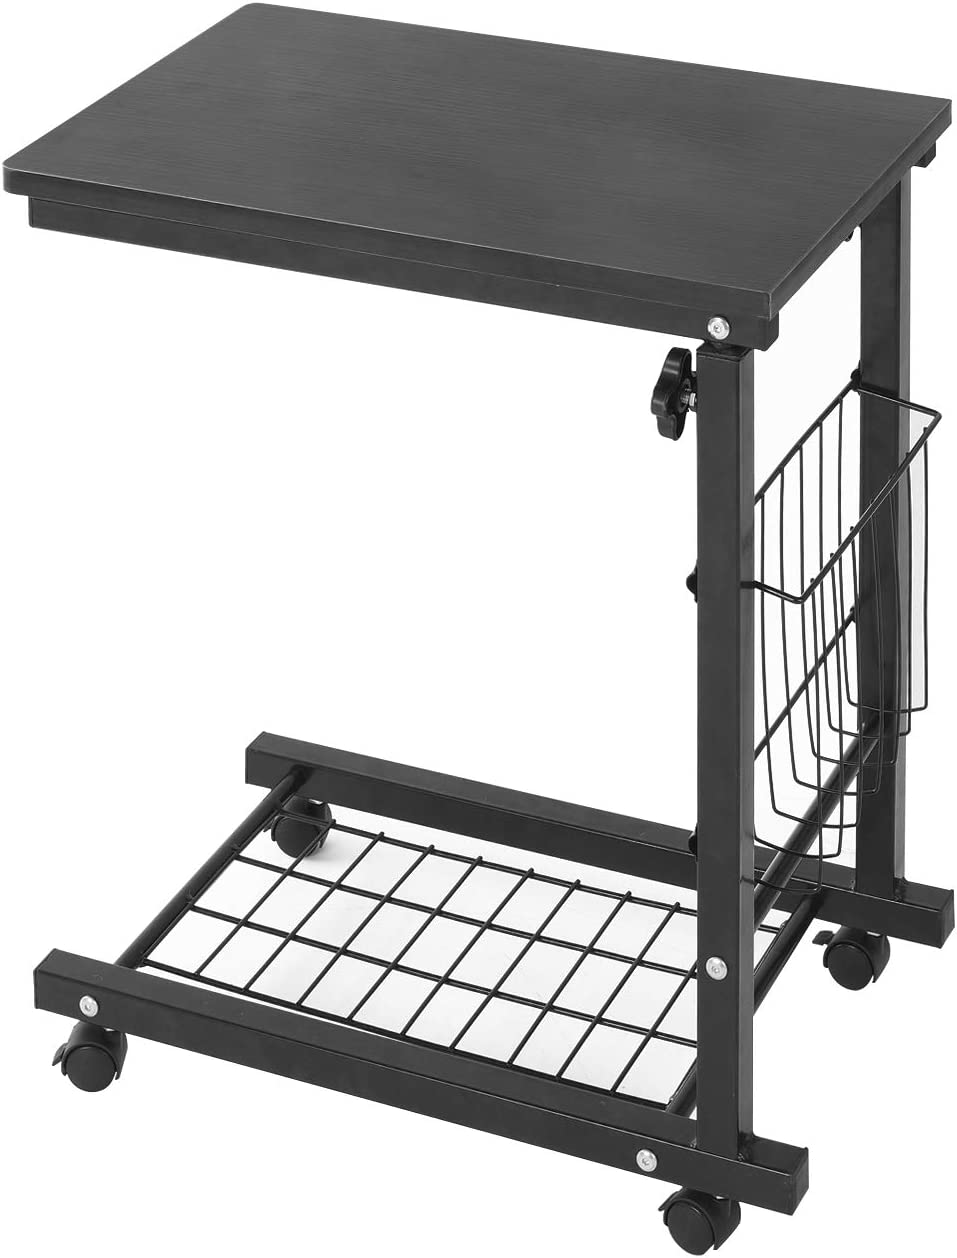 sogesfurniture Height Adjustable Sofa Side Table End Table C Table Laptop Holder End Stand Desk Coffee Tray Side Table,Black BHUS-ZS-C6-BK